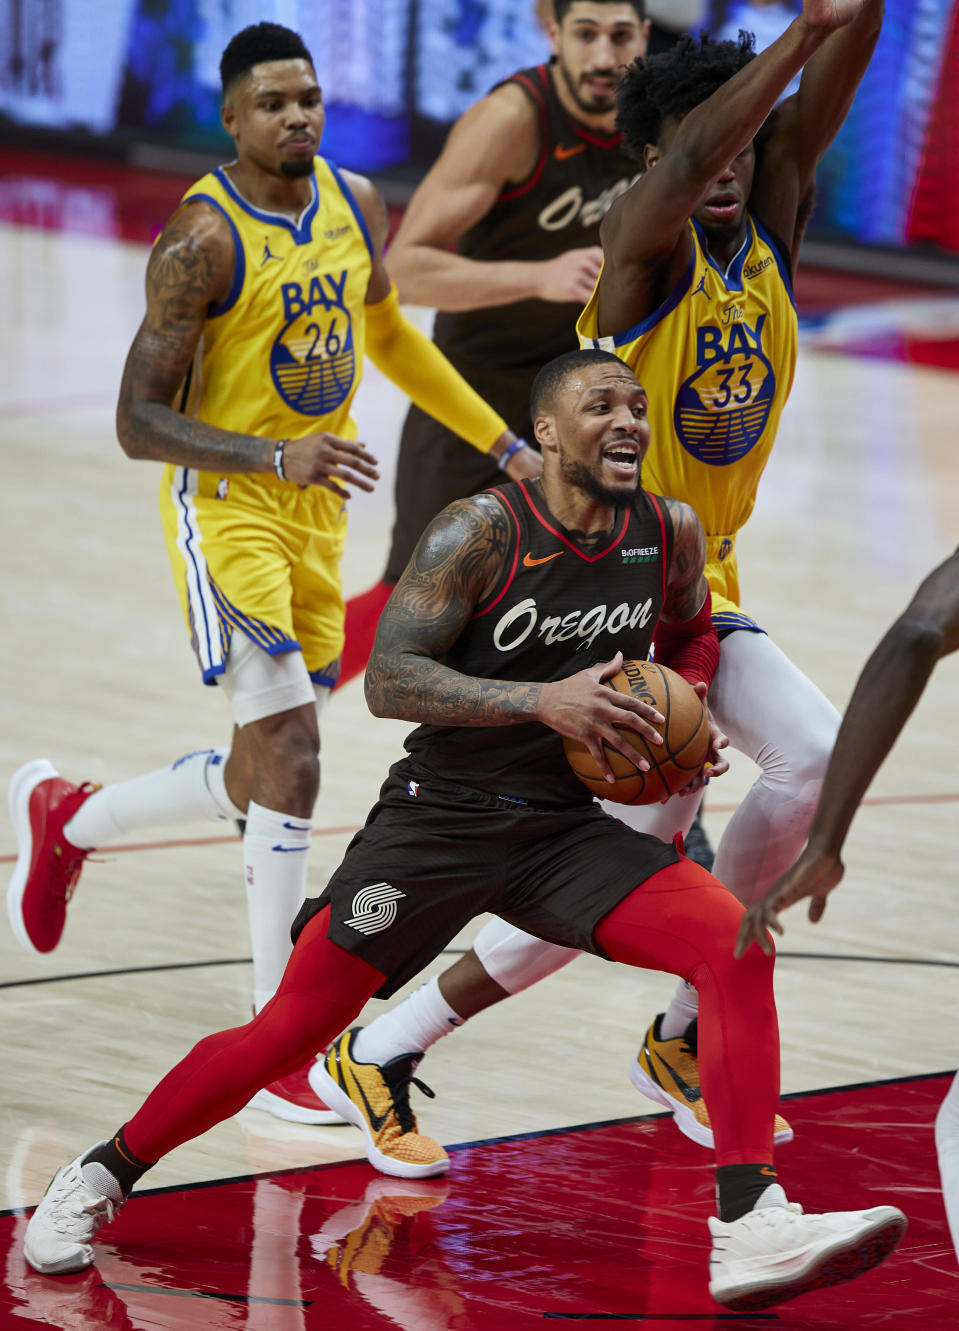 Portland Trail Blazers guard Damian Lillard drives to the basket in front of Golden State Warriors center James Wiseman, right, and forward Kent Bazemore during the second half of an NBA basketball game in Portland, Ore., Wednesday, March 3, 2021. (AP Photo/Craig Mitchelldyer)